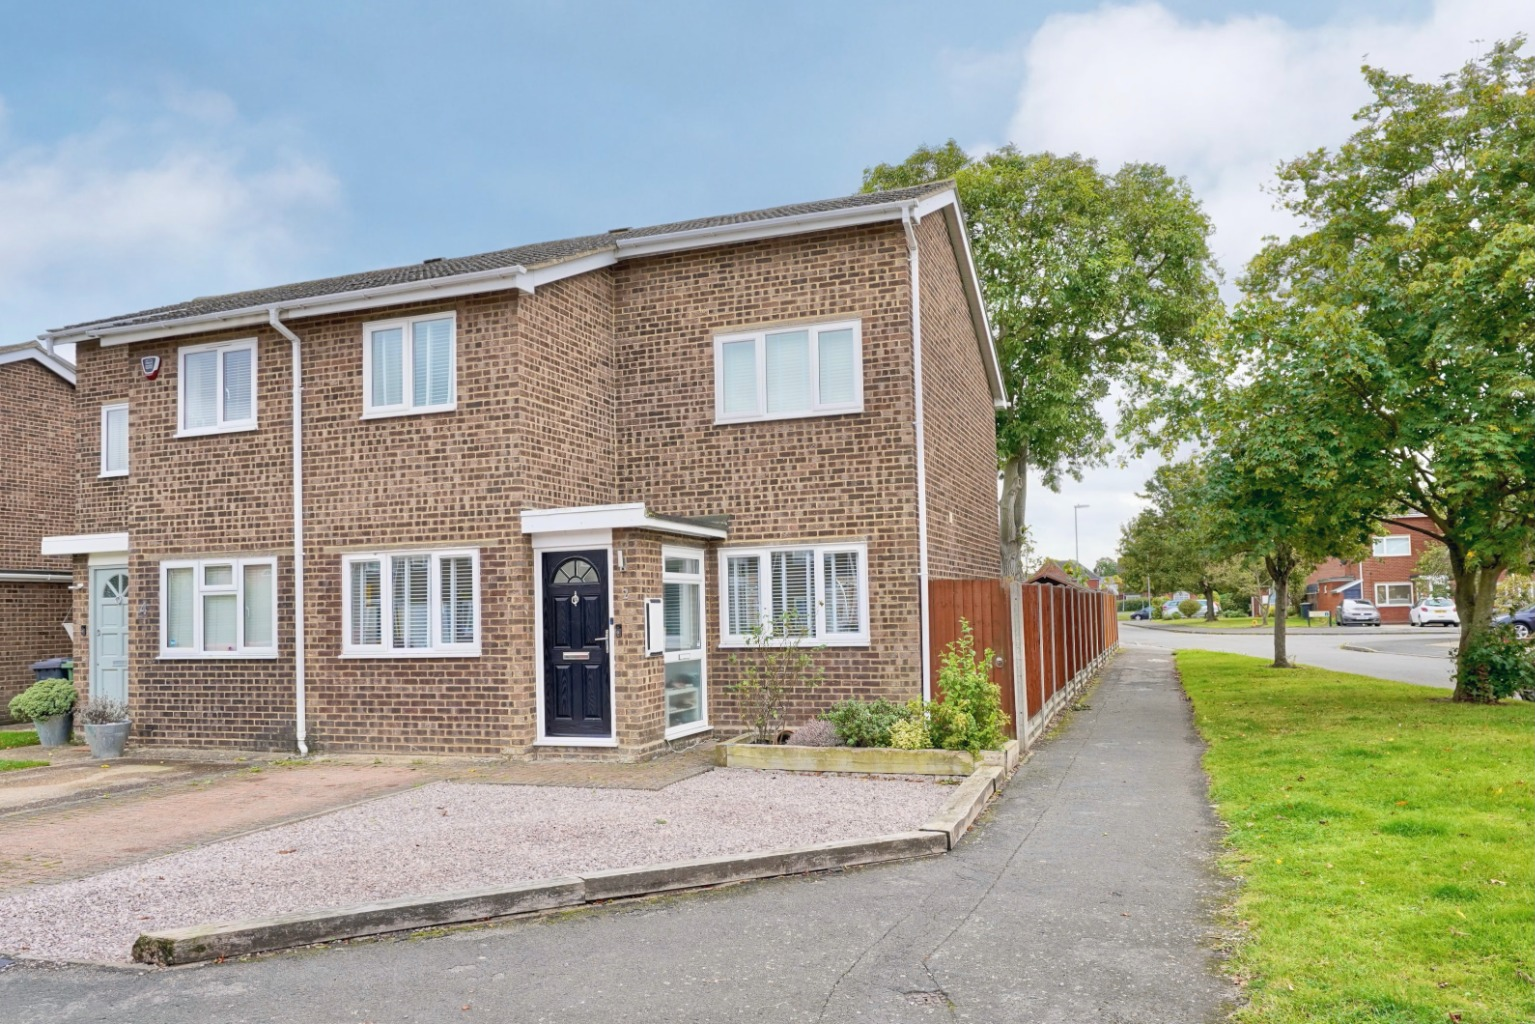 3 bed  for sale in Burns Court, St. Neots, PE19